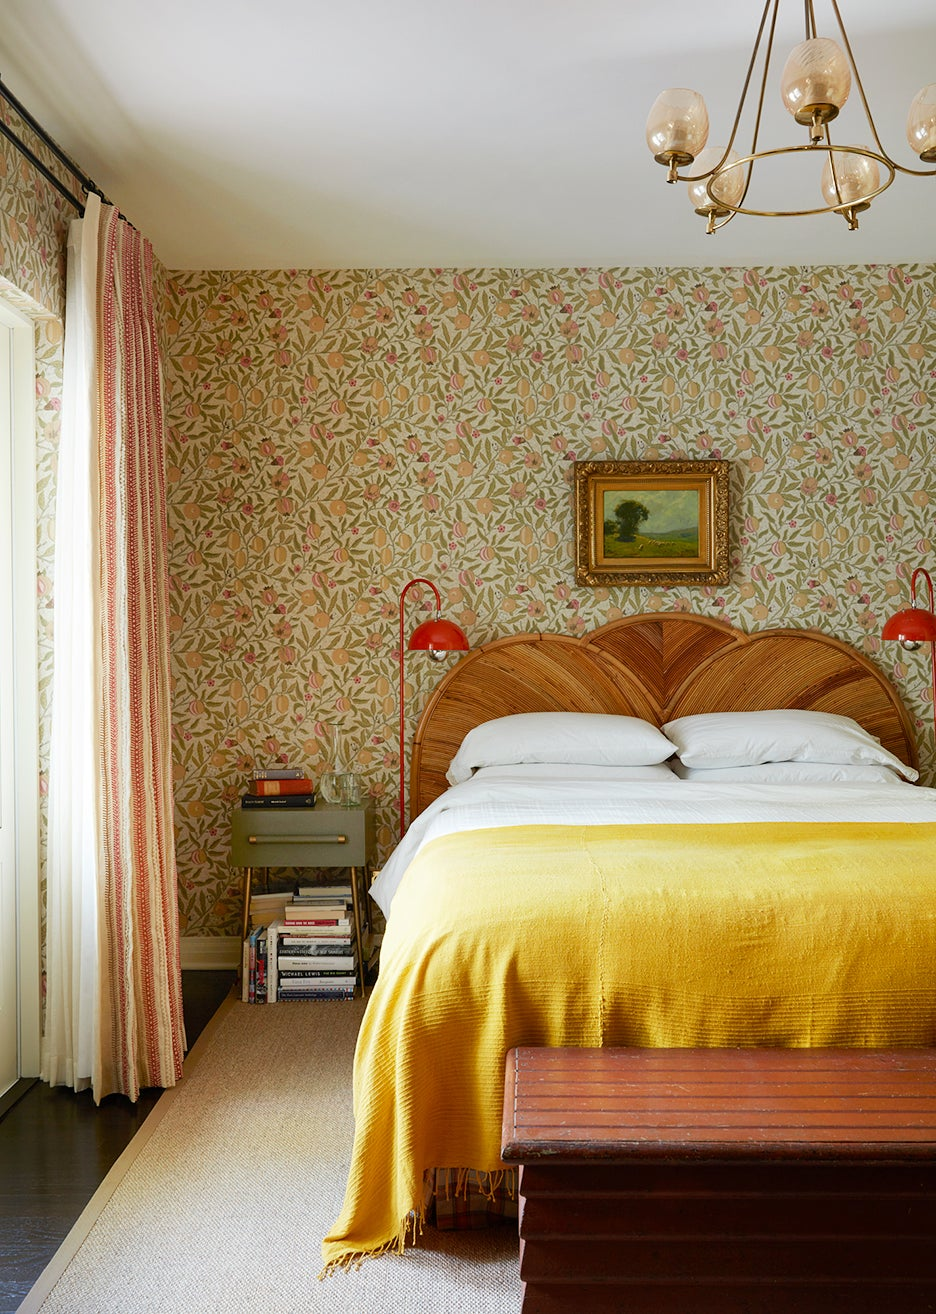 Bedroom with yellow bedspread and floral wallpaper